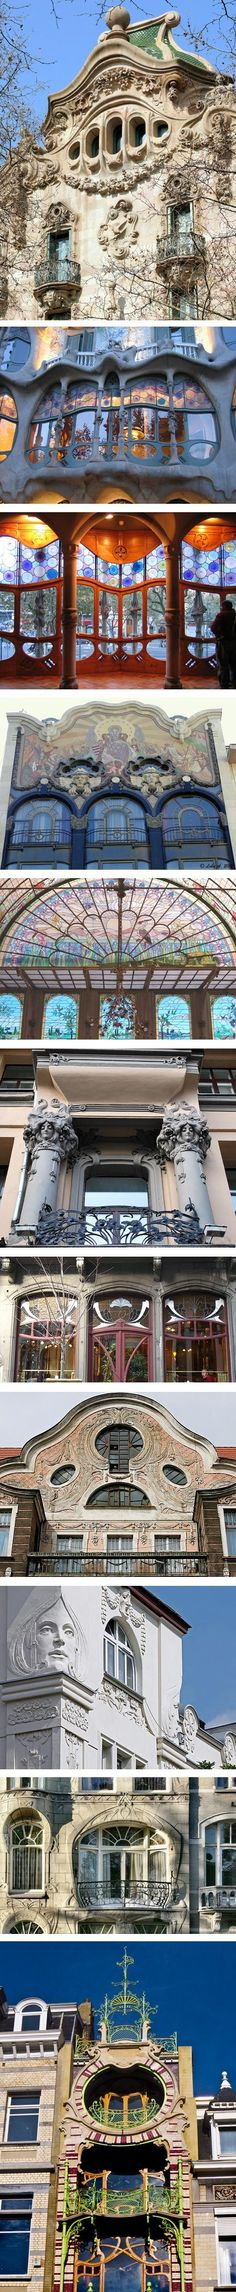 Art Nouveau Architecture | art nouveau was a movement that encompassed more than visual art ...